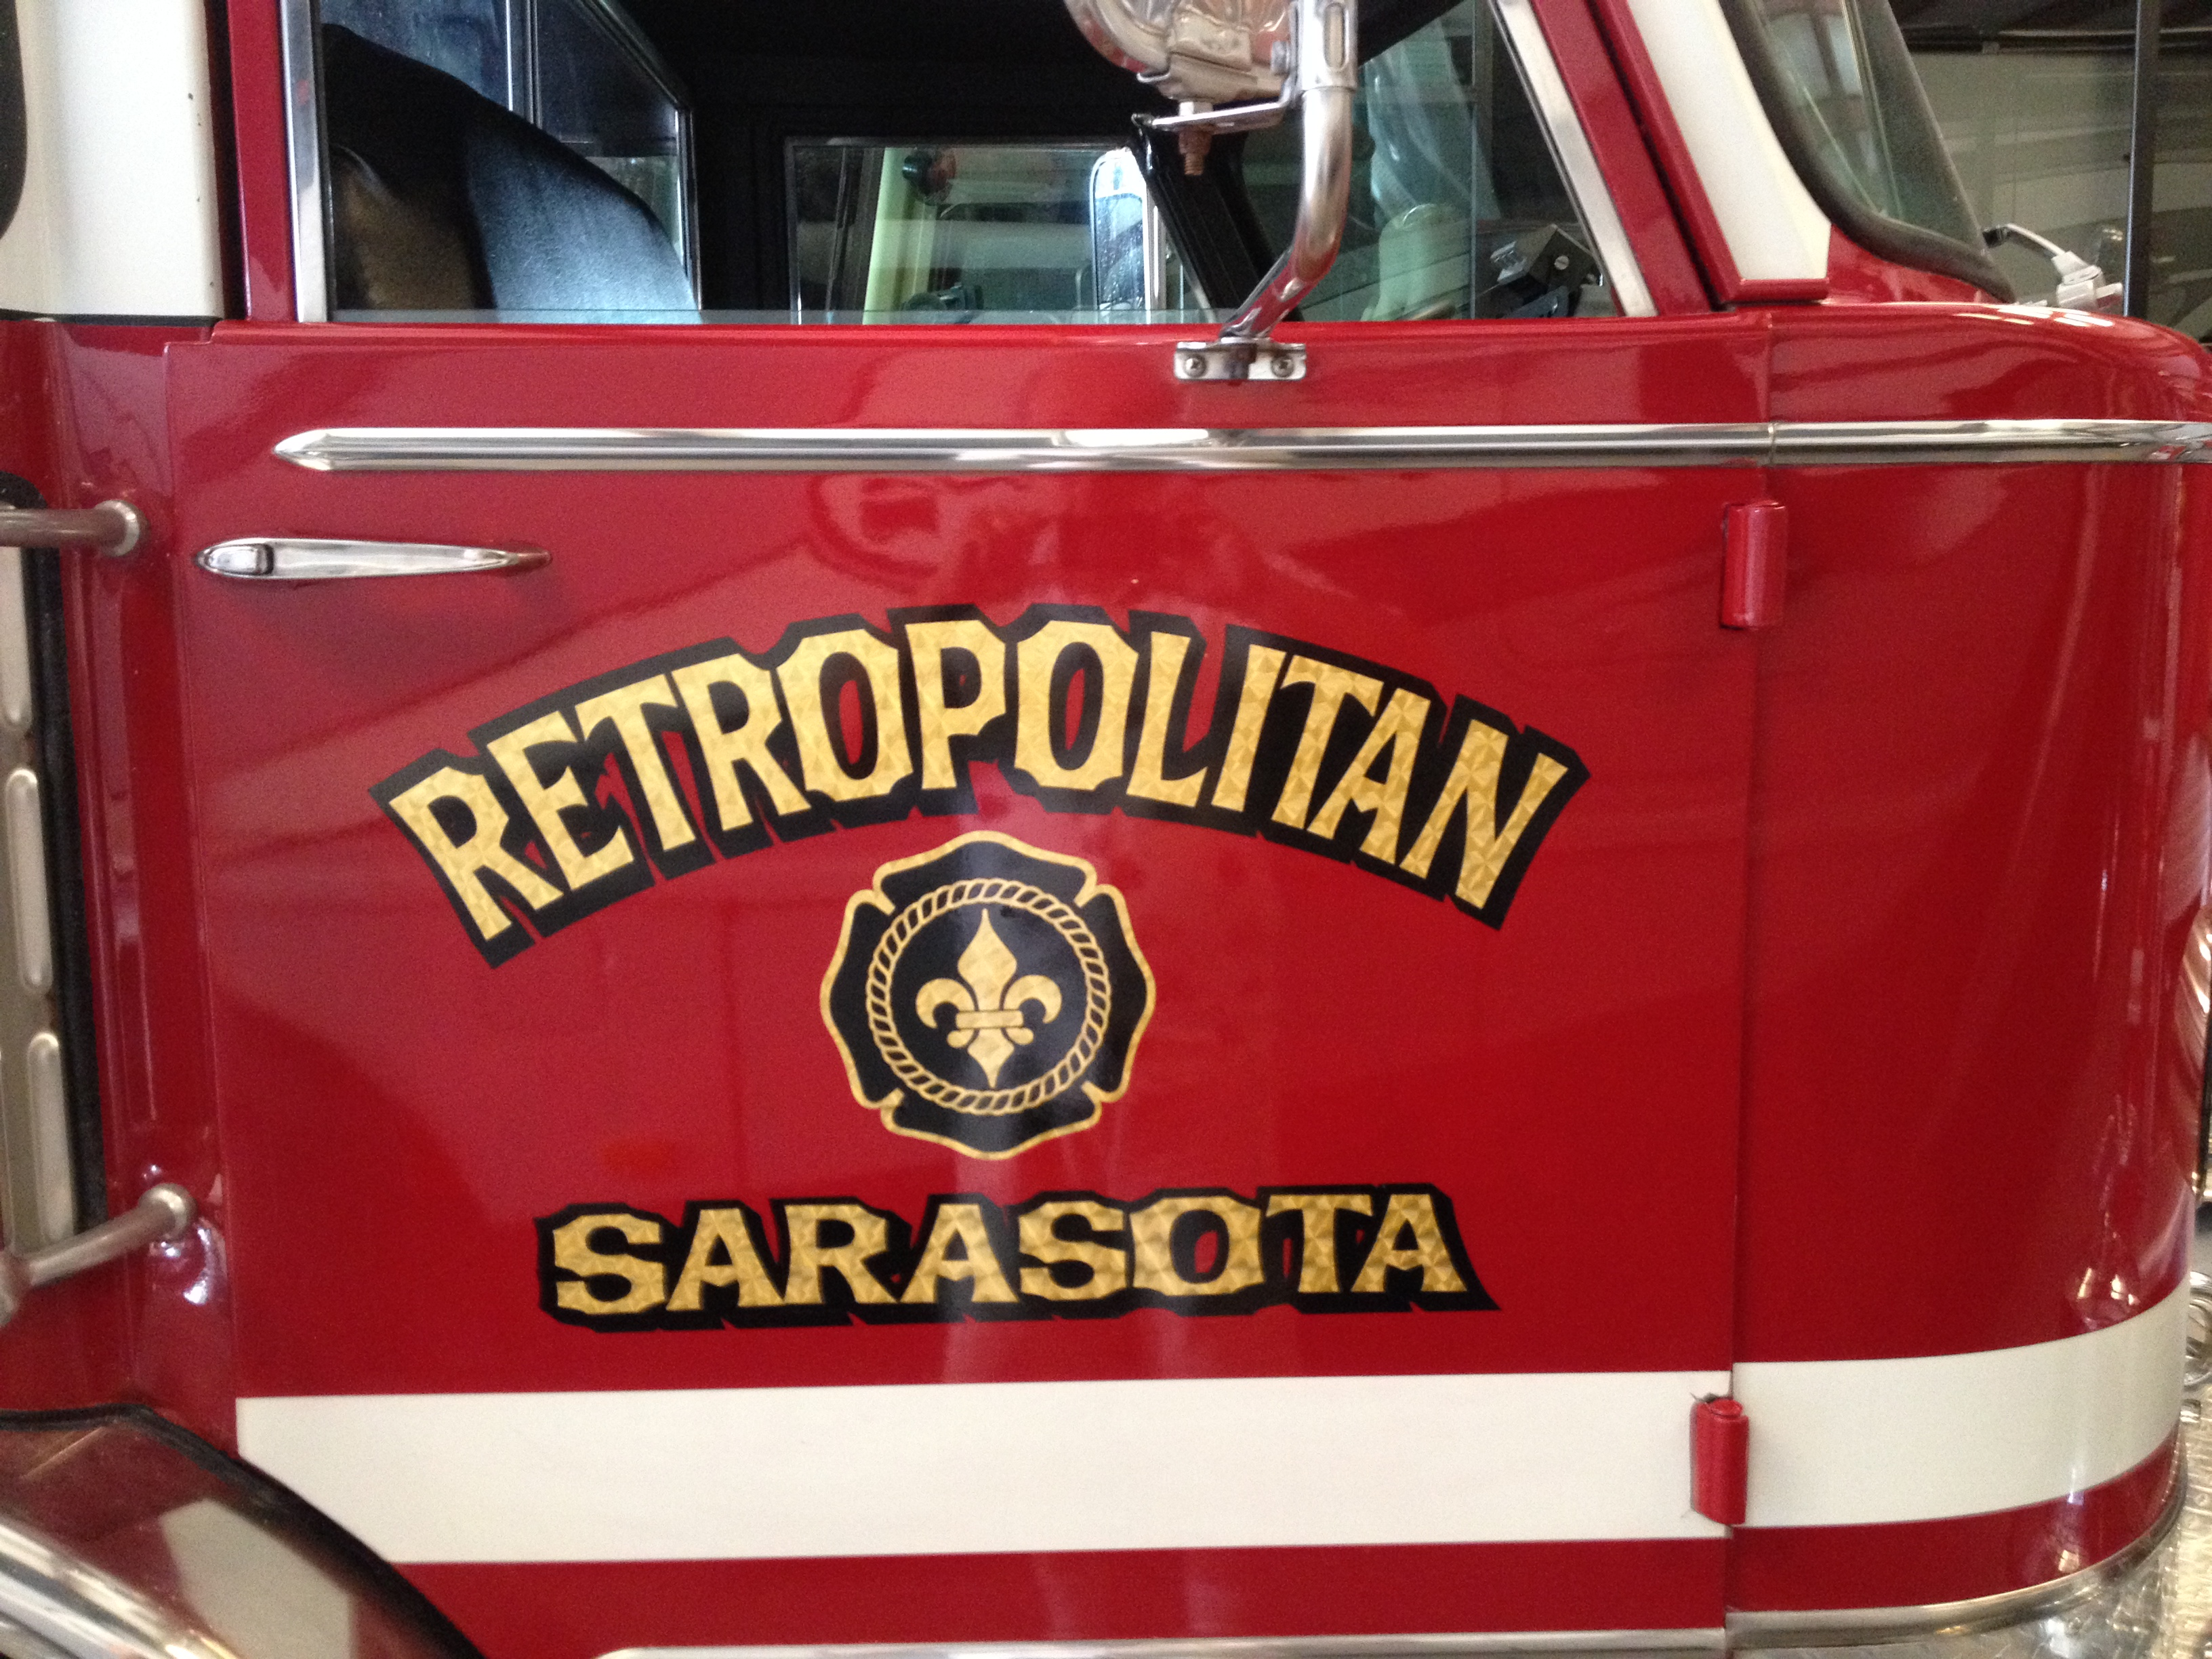 In the 70s and 80s Sarasota County FD assumed several smaller departments.  The department was branded as Metropolitan Sarasota FD, or just METRO.   My friend Tom Hutton in New York had a collection of ambulances he called Retro Ambulance.  In my mind, Metro and Retro merged.